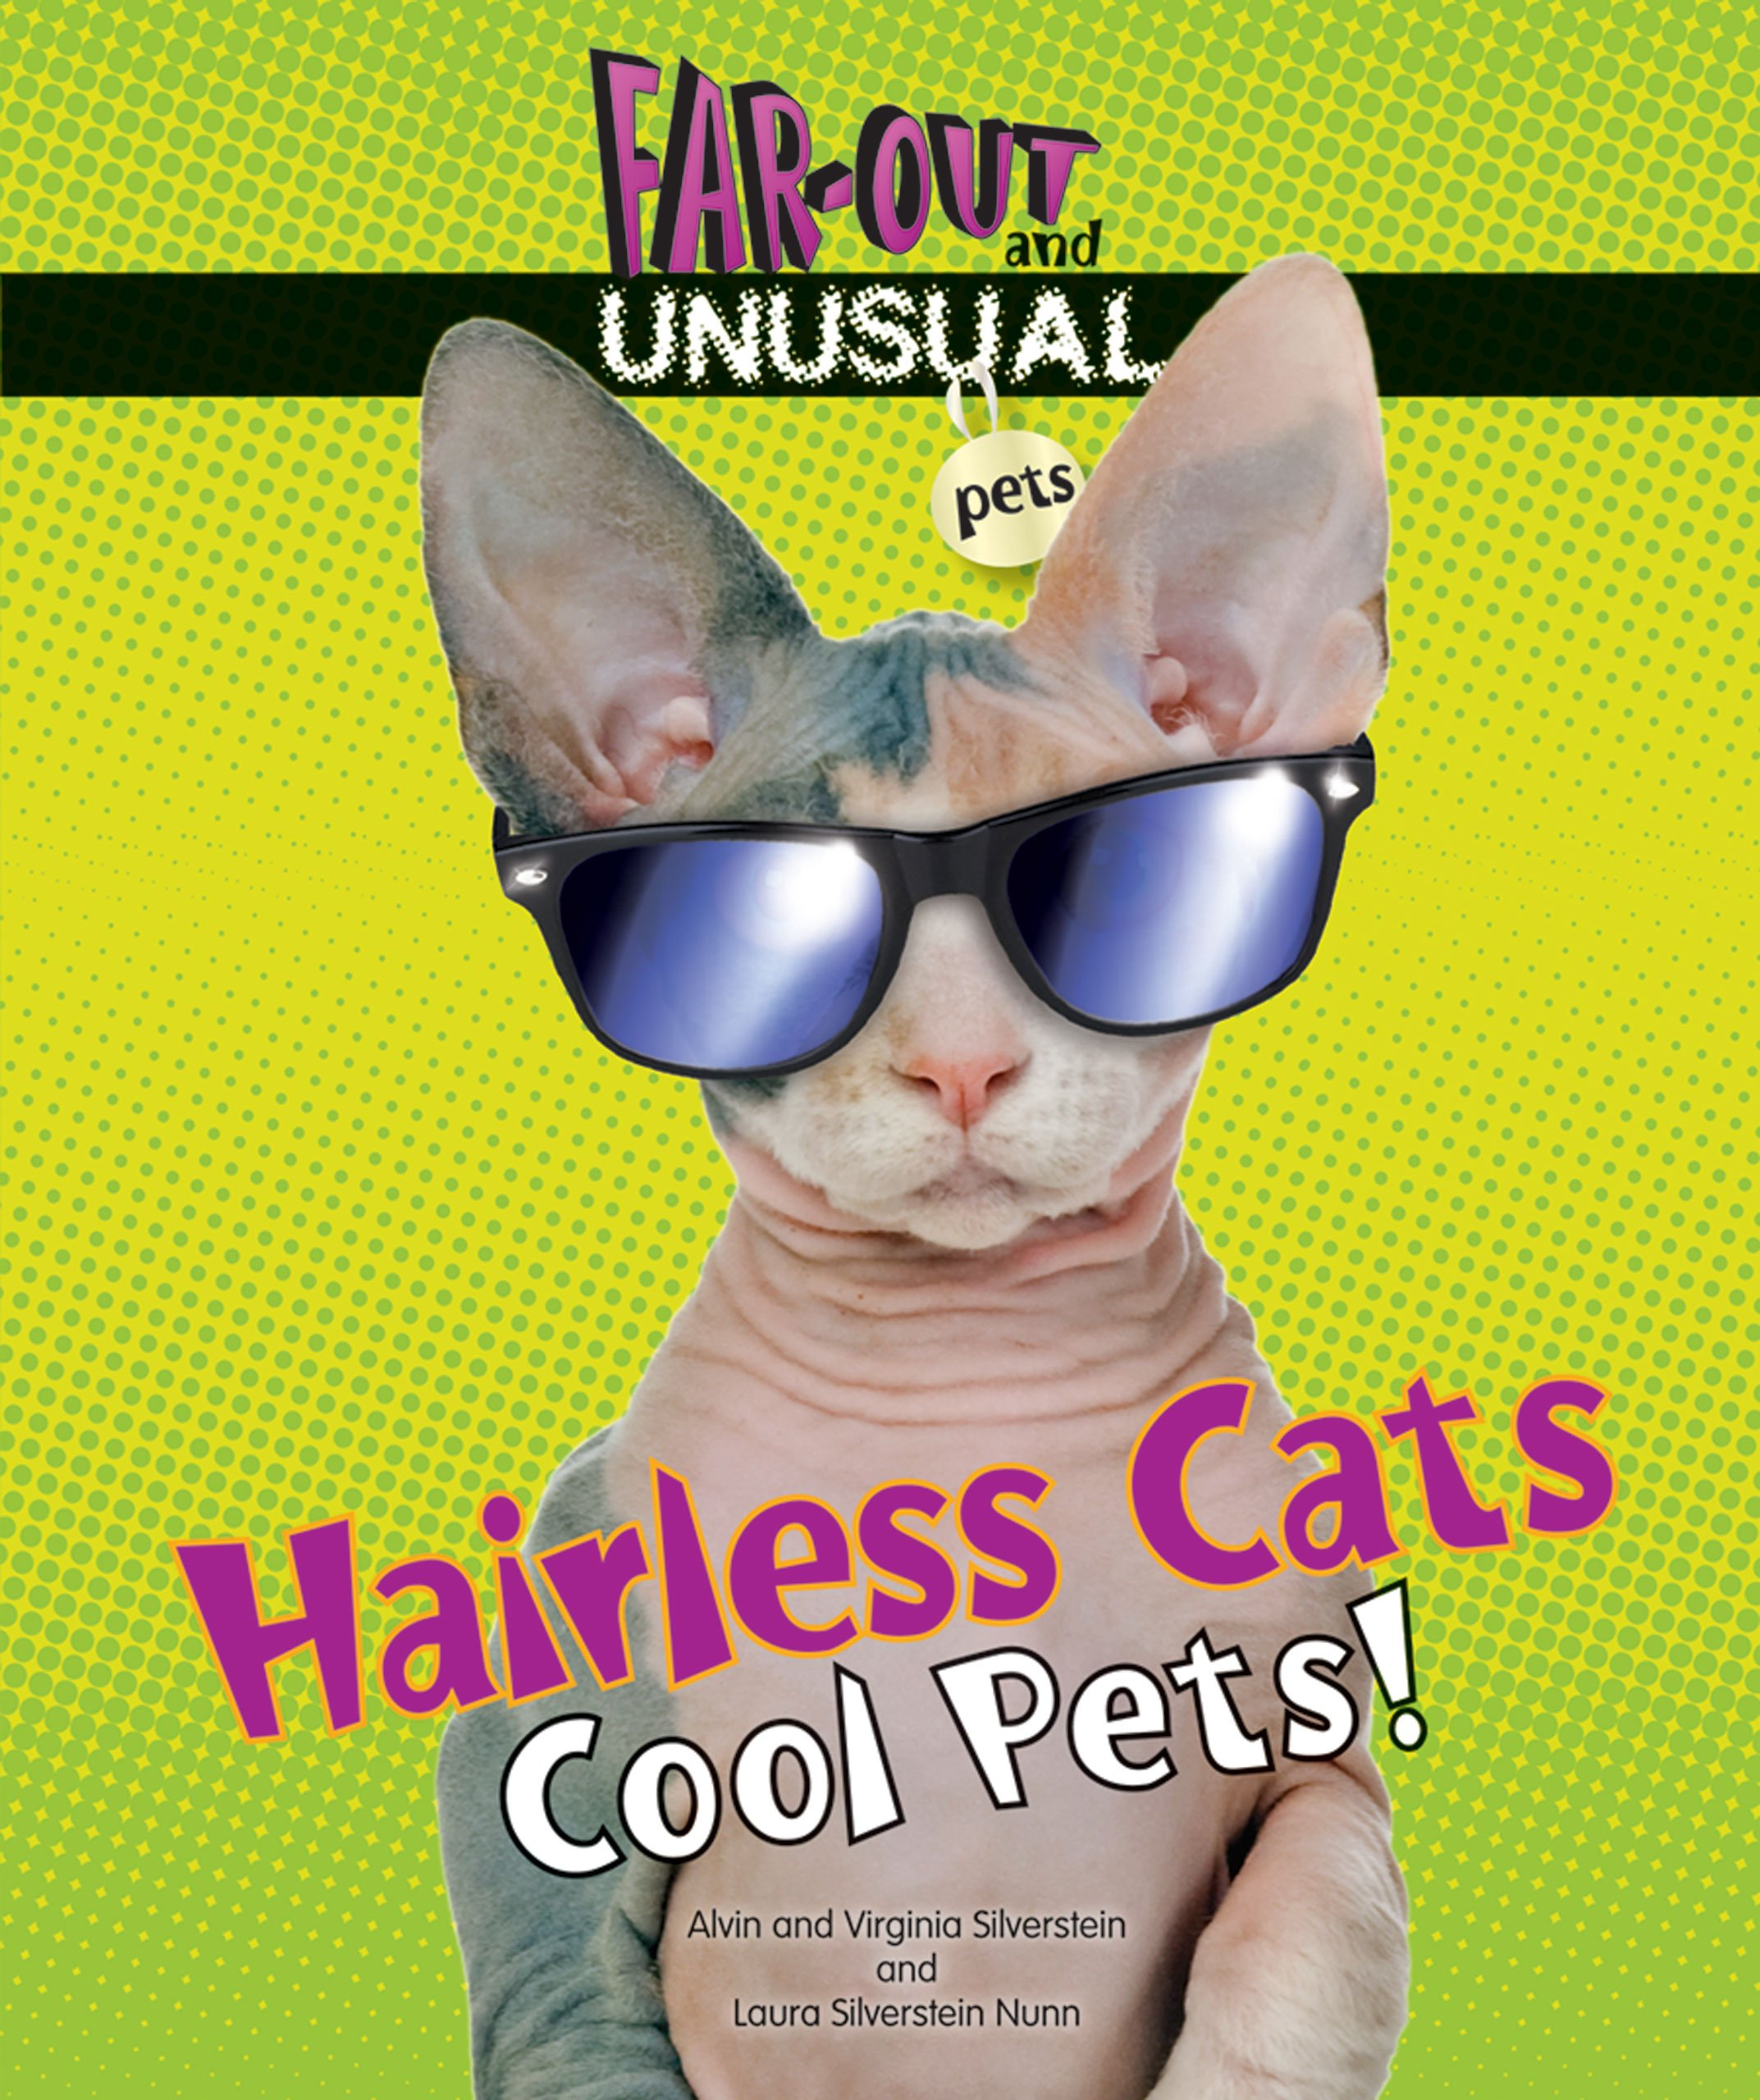 Hairless Cats: Cool Pets! (Far-Out and Unusual Pets)